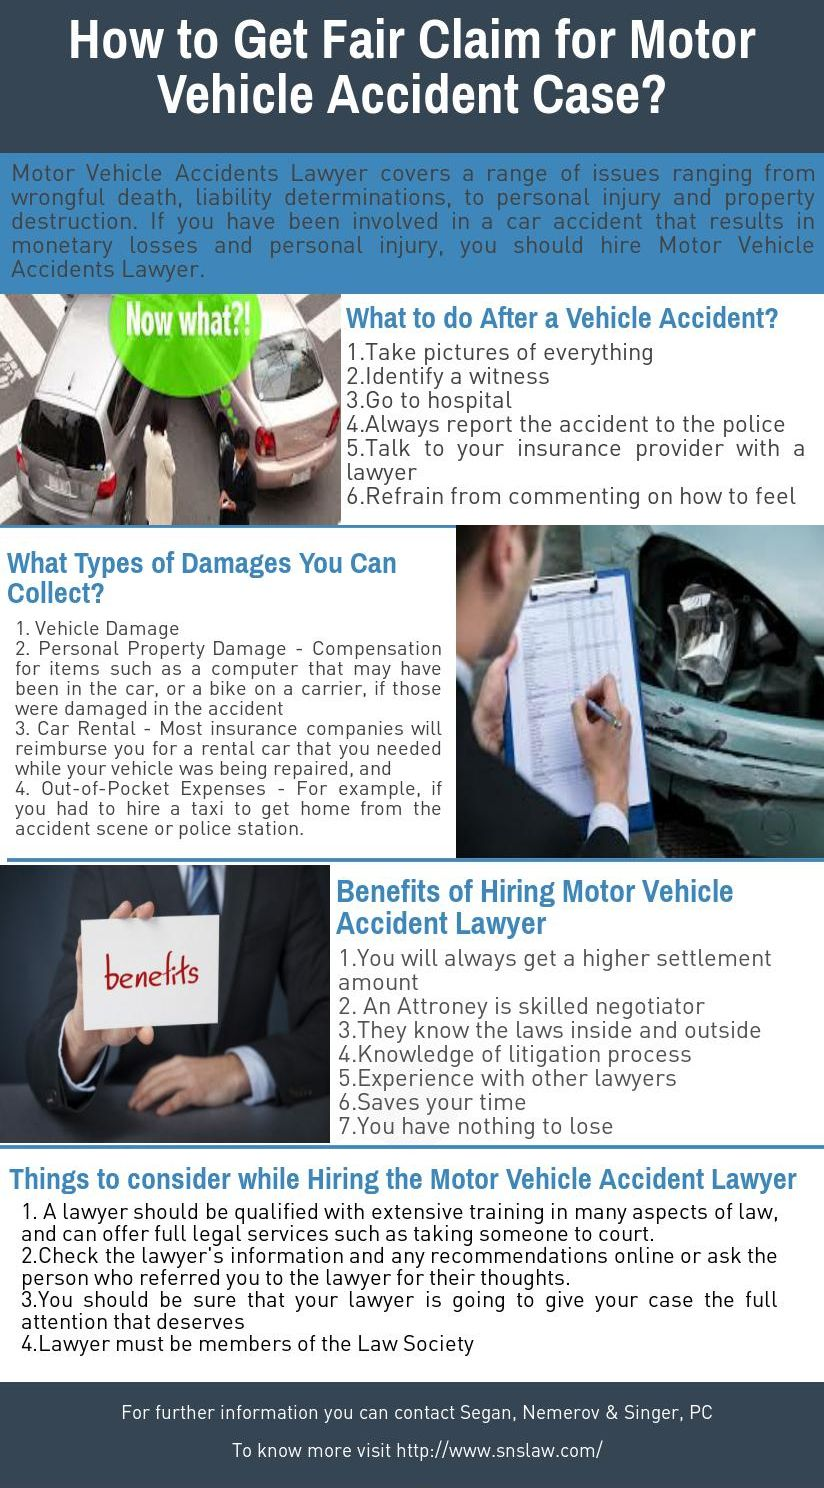 Met With A Vehicle Accident At Segan Nemerov Singer Pc Law Firm We Can Help You With The Right Sort Of Legal Assistance R Car Accident Accident Motor Car